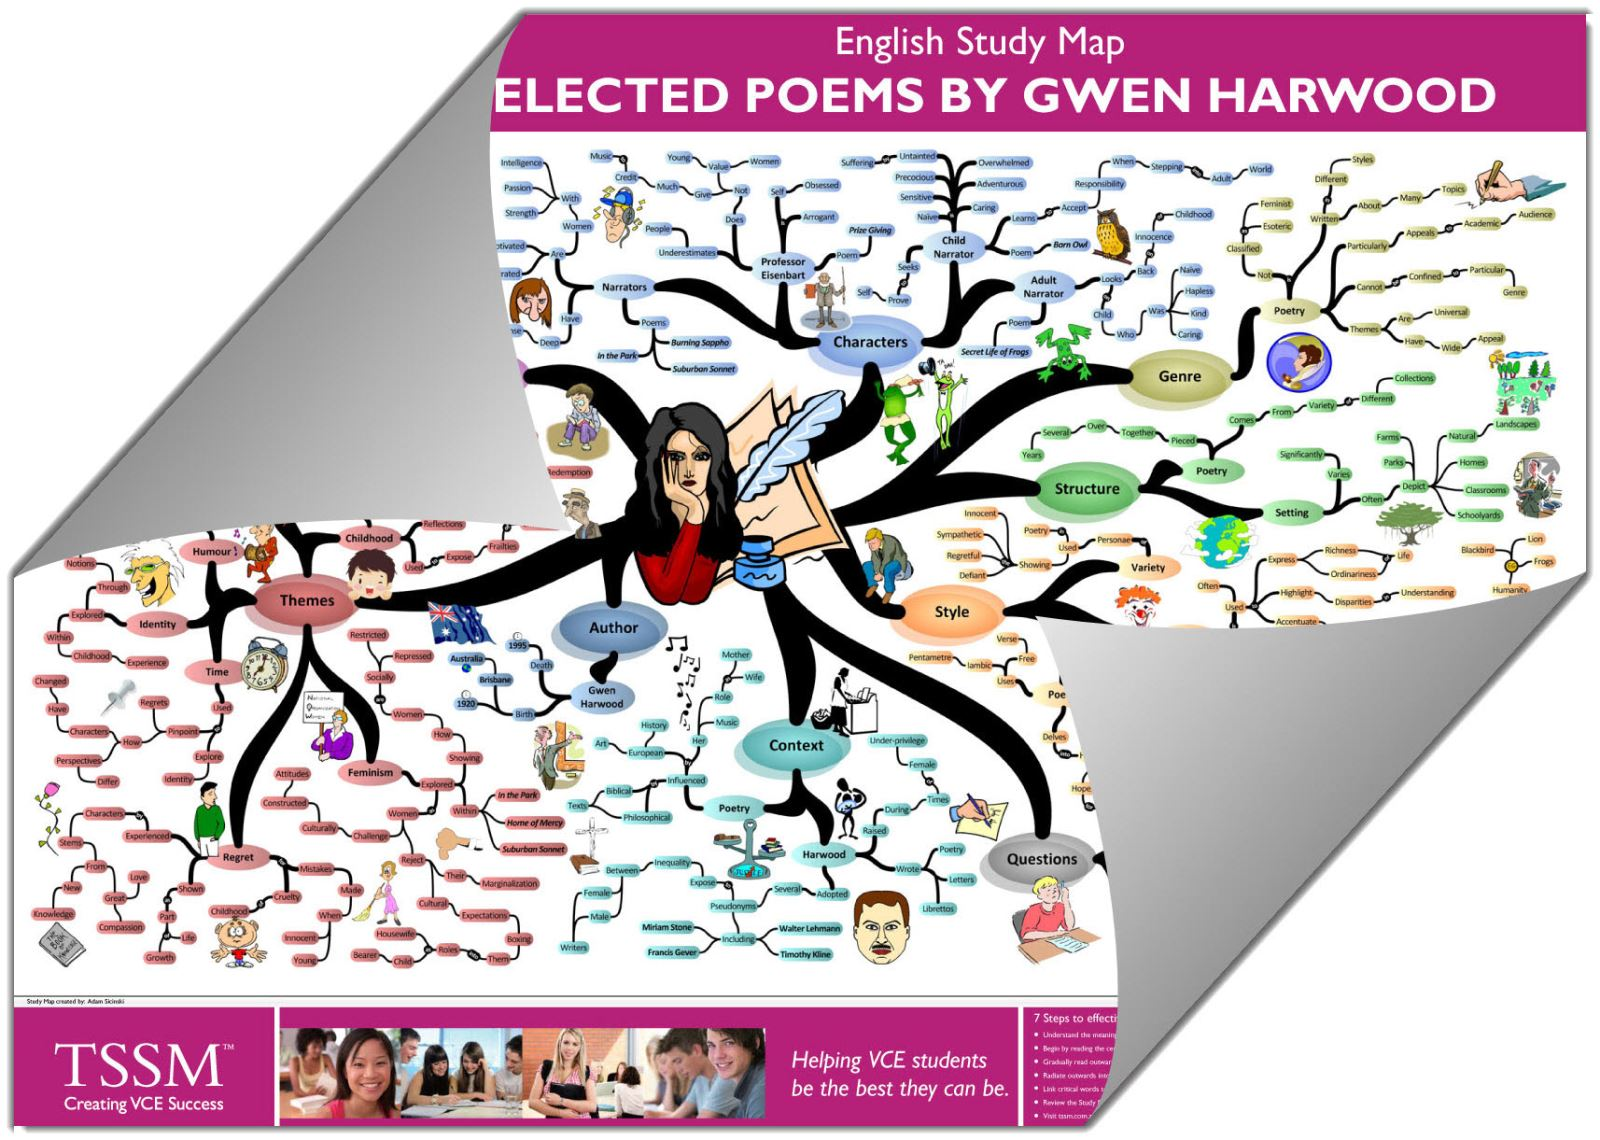 gwen harwood notes the violets The violets by gwen harwood was written during the late 1960s and was published in the anthology selected poems in 1975 as we know, harwood's poems explore philosophical and universal ideas.